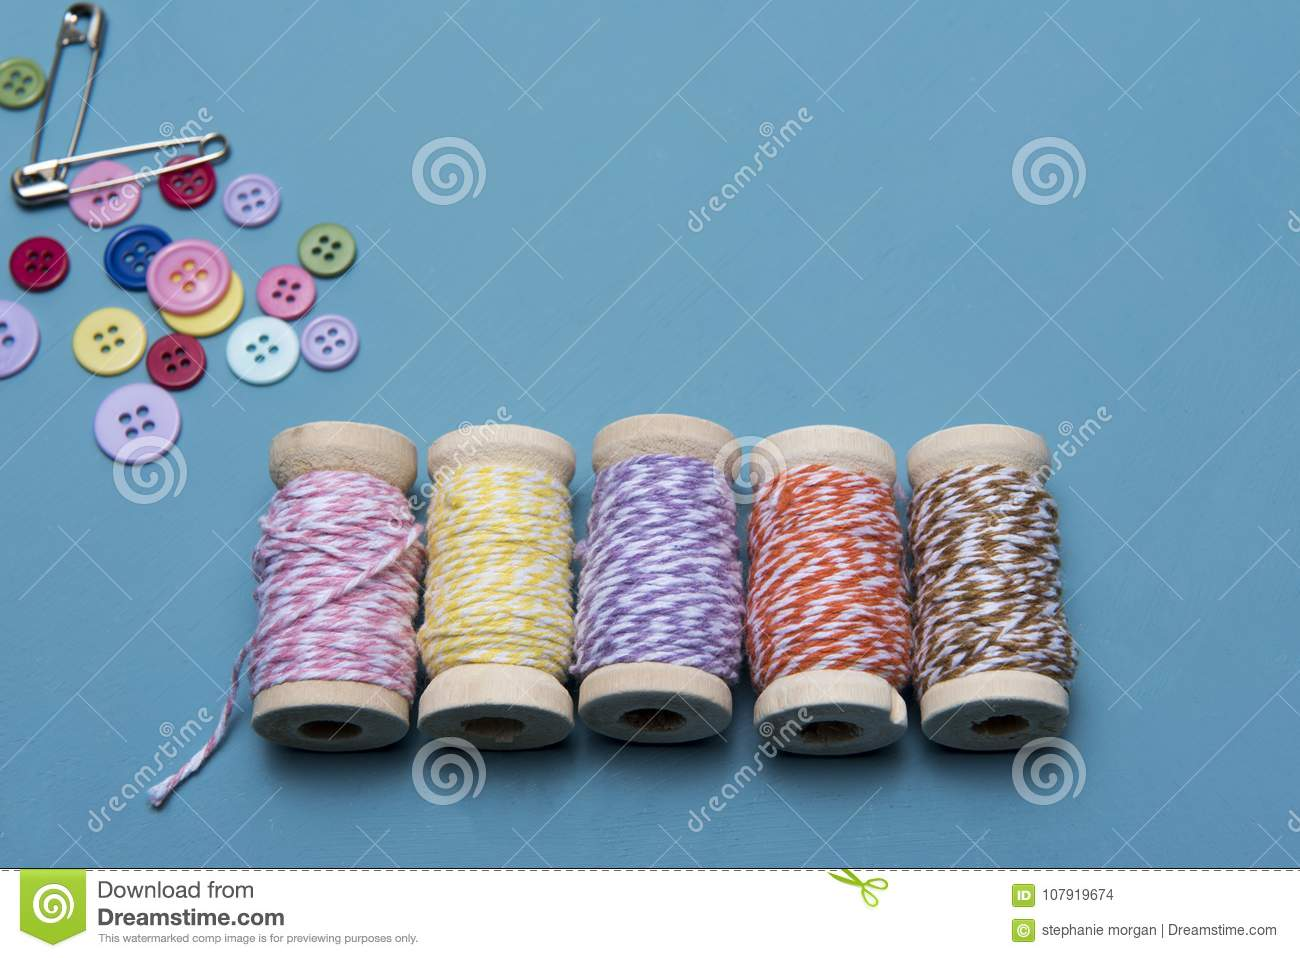 Arts and crafts background image of colourful string with pins and buttons